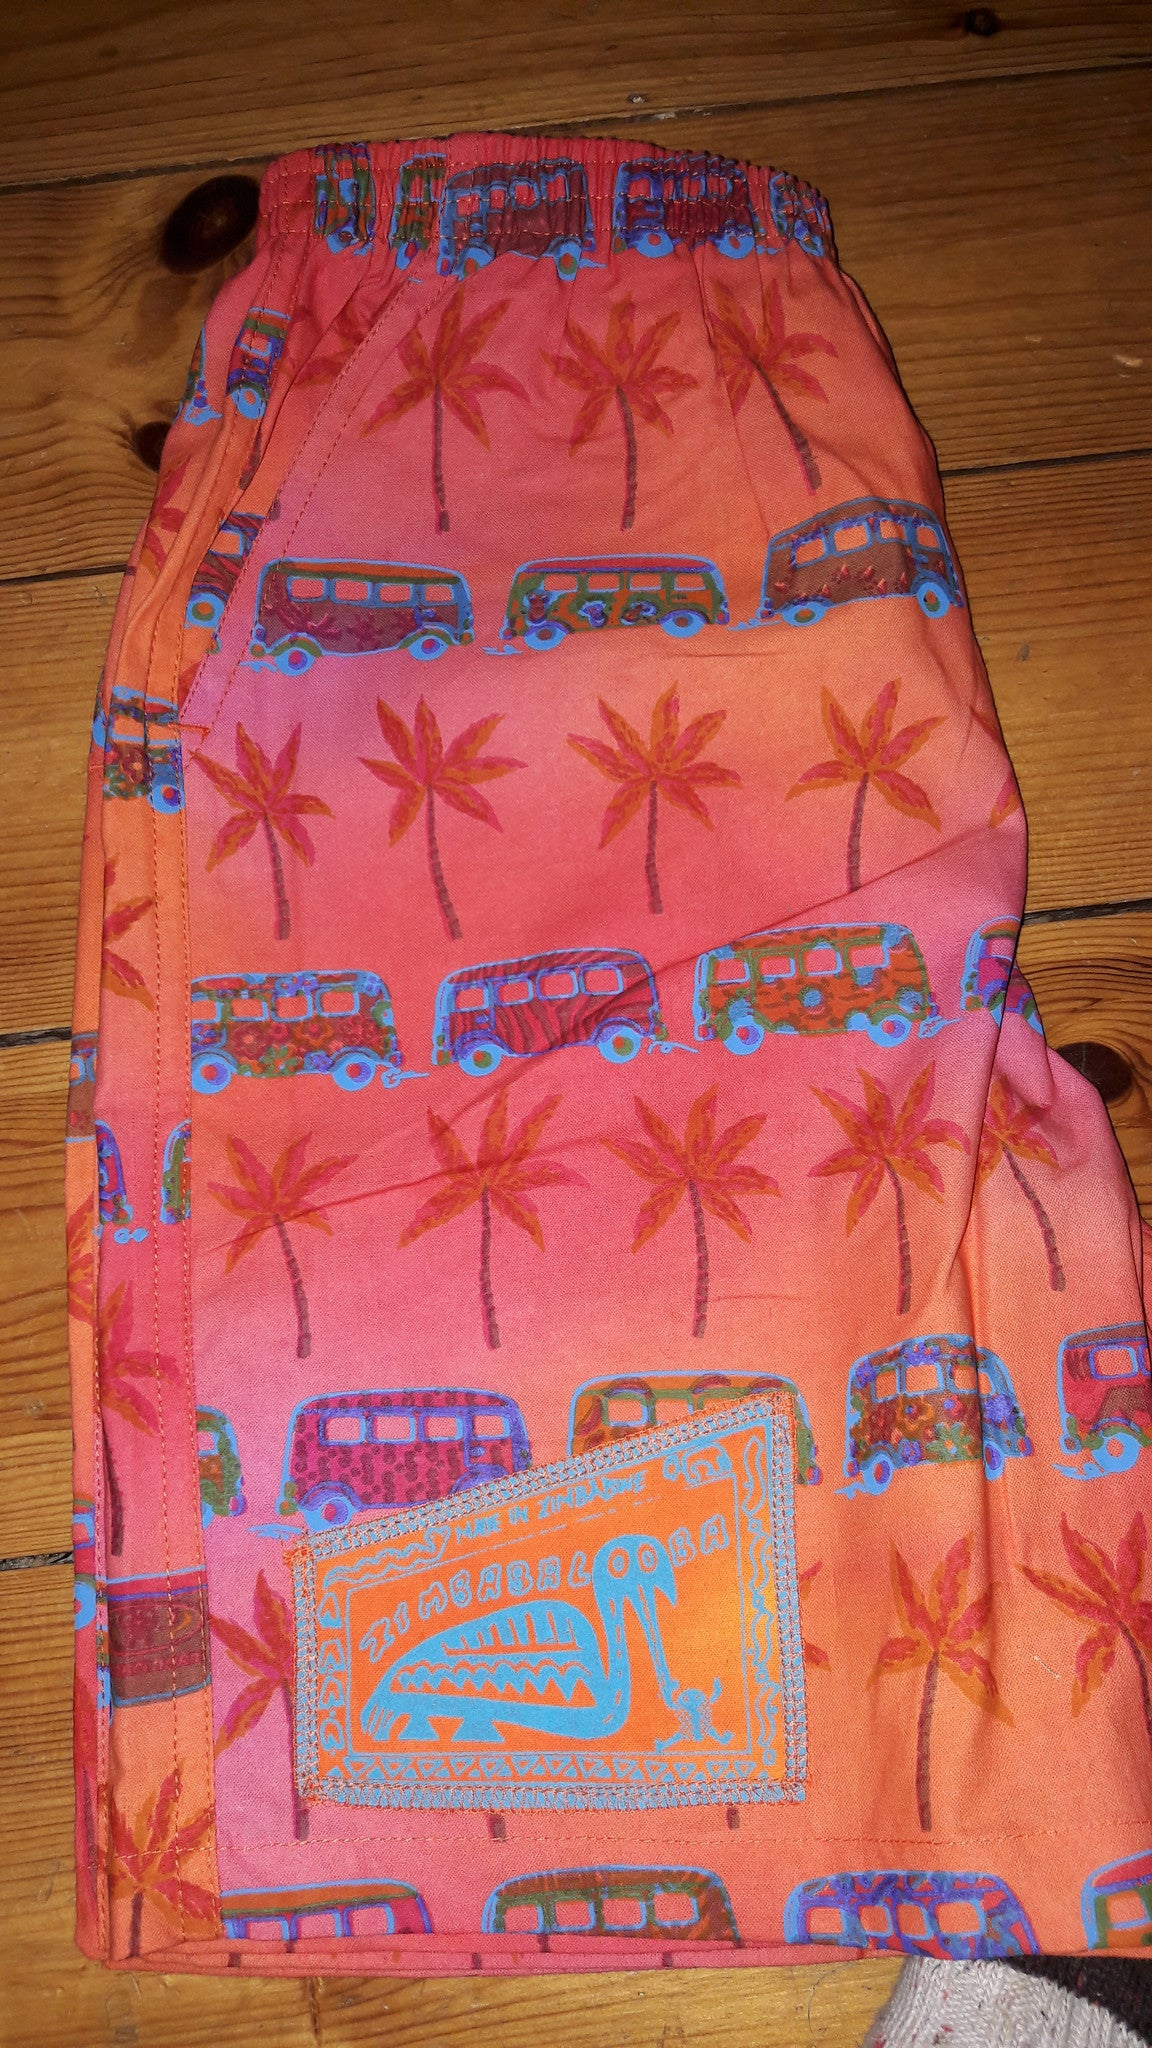 Kid's Shorts - VW Kombi print - 100% Cotton Baggies